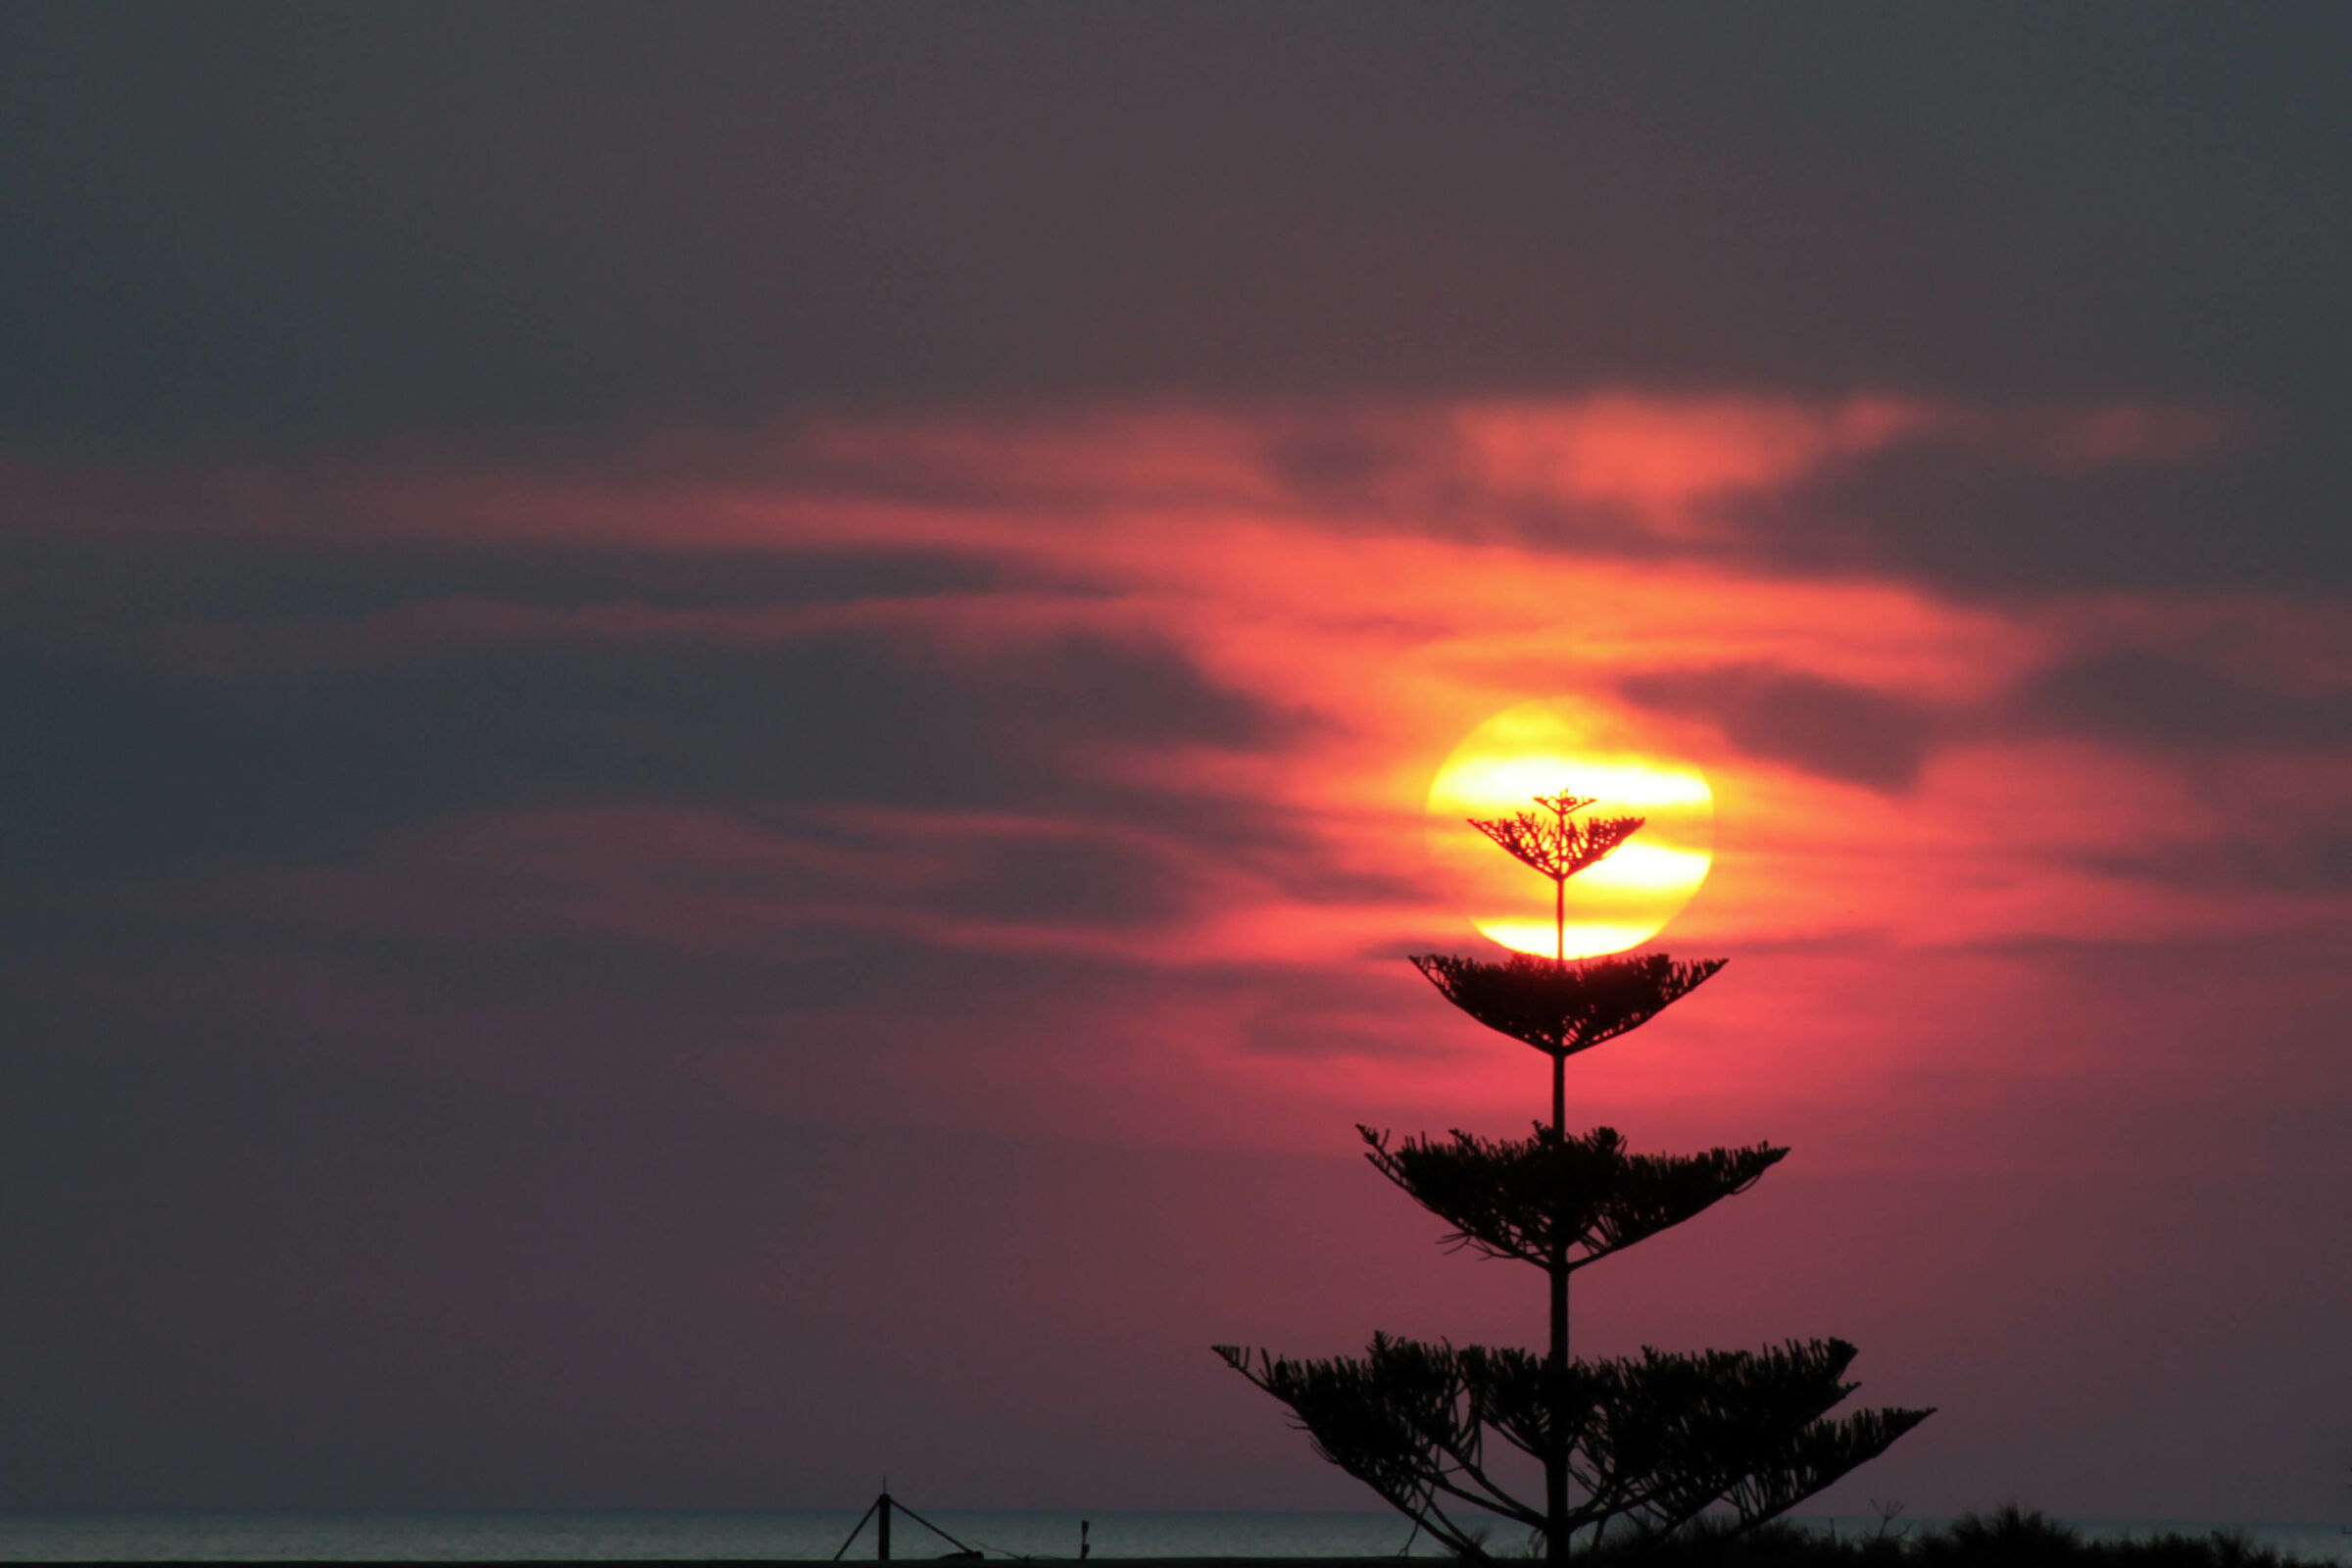 Lil sunset on the araucaria...